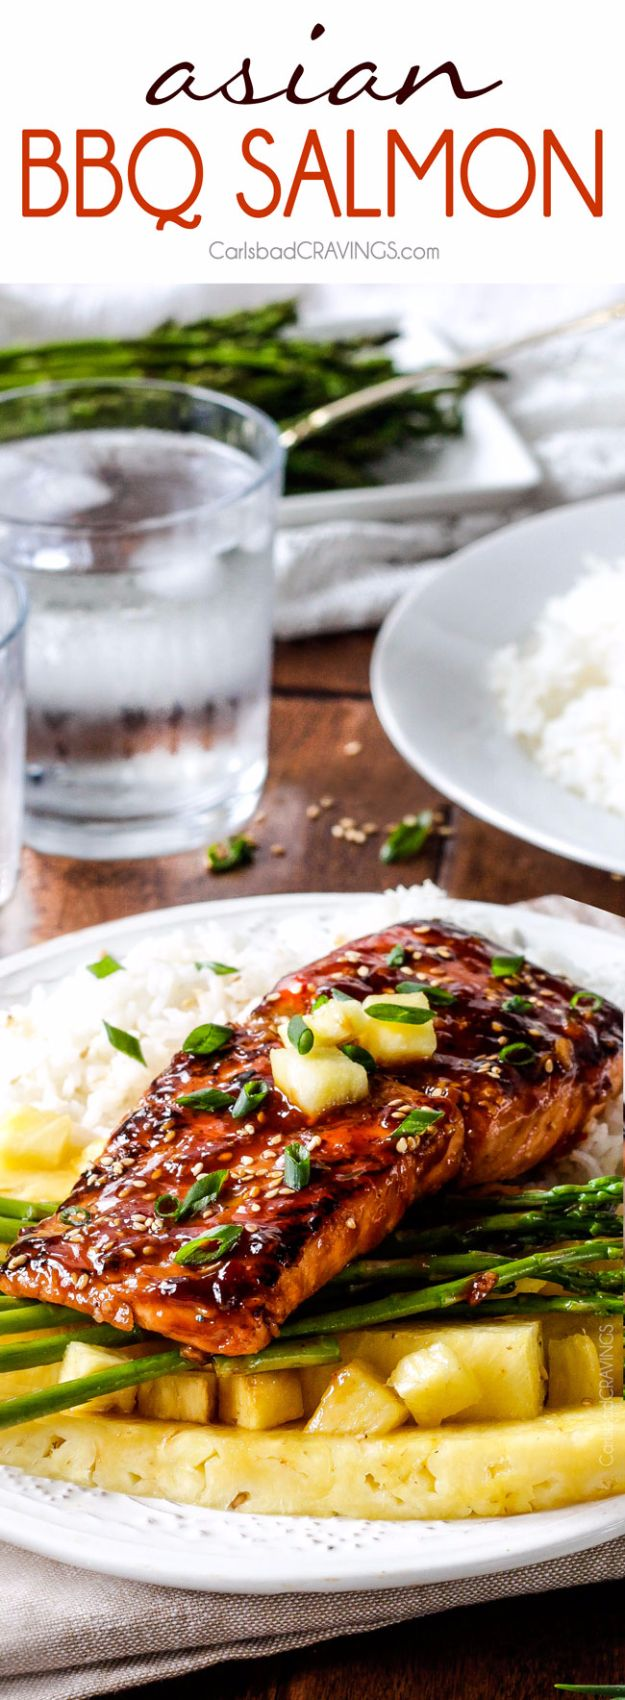 Best Barbecue Recipes - Asian BBQ Salmon - Easy BBQ Recipe Ideas for Lunch, Dinner and Quick Party Appetizers - Grilled and Smoked Foods, Chicken, Beef and Meat, Fish and Vegetable Ideas for Grilling - Sauces and Rubs, Seasonings and Favorite Bar BBQ Tips #bbq #bbqrecipes #grilling